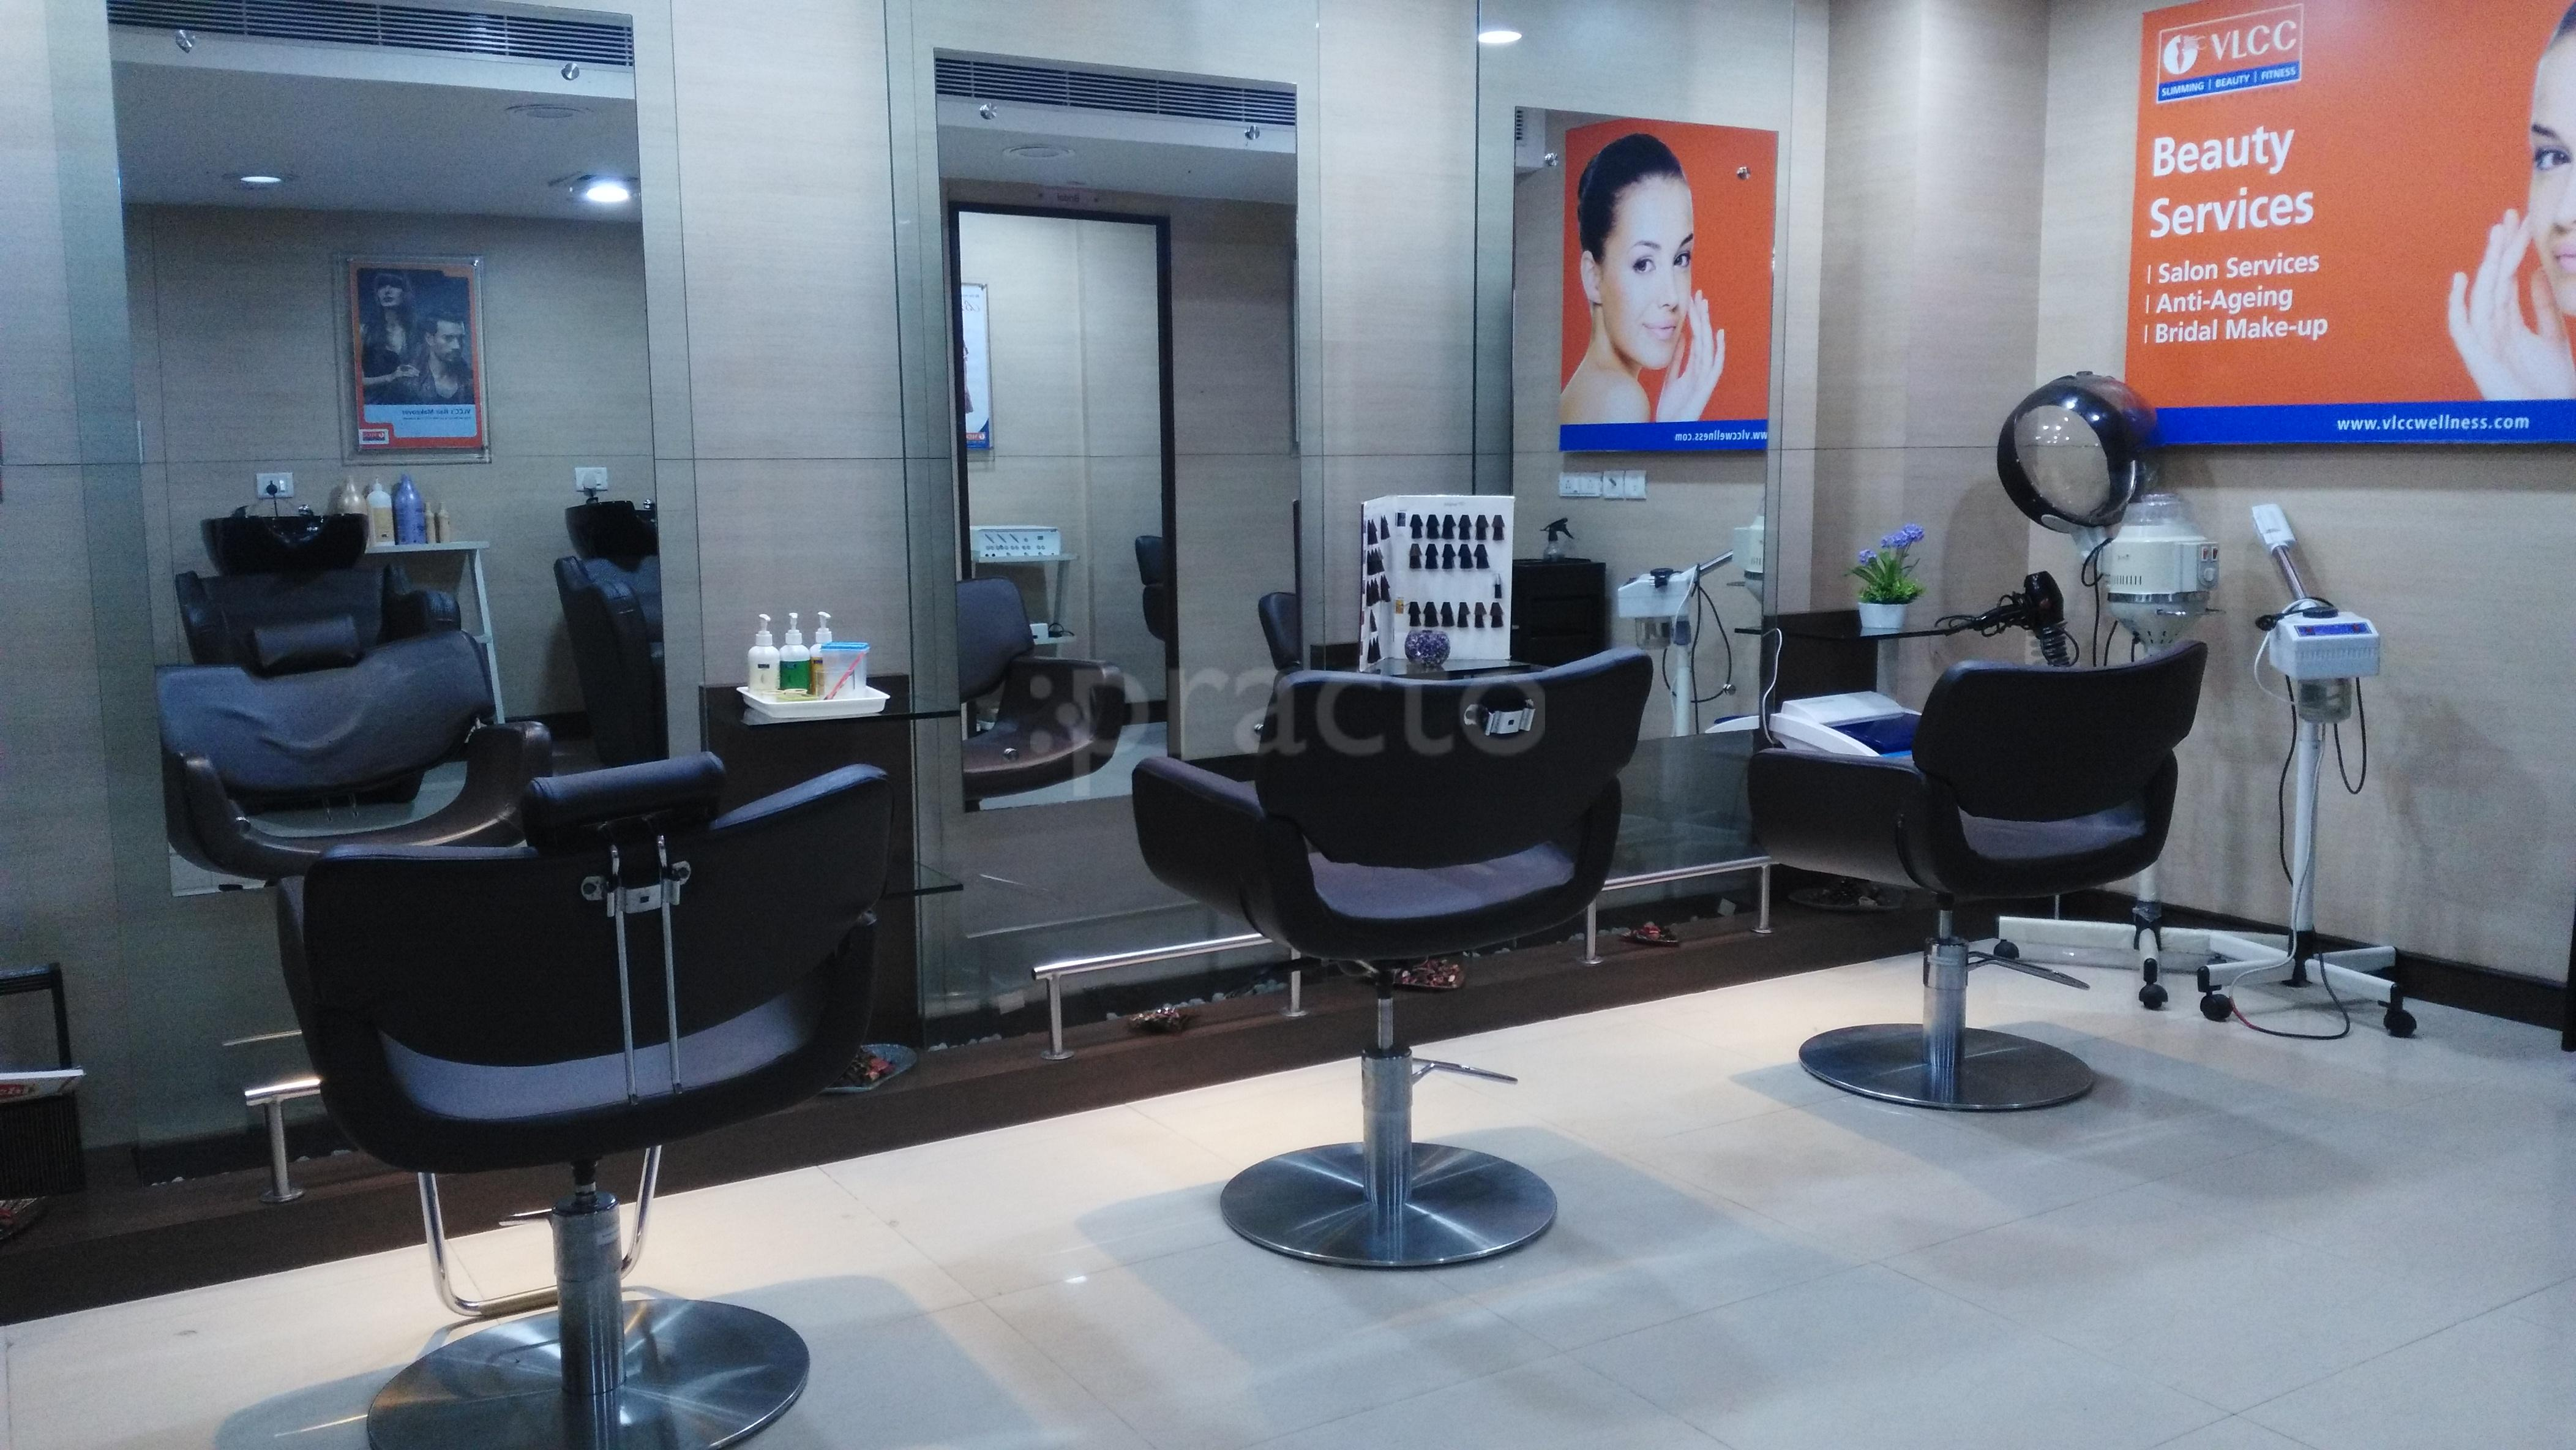 VLCC Spa & Salon in Chennai - Book Appointment Online, View Address